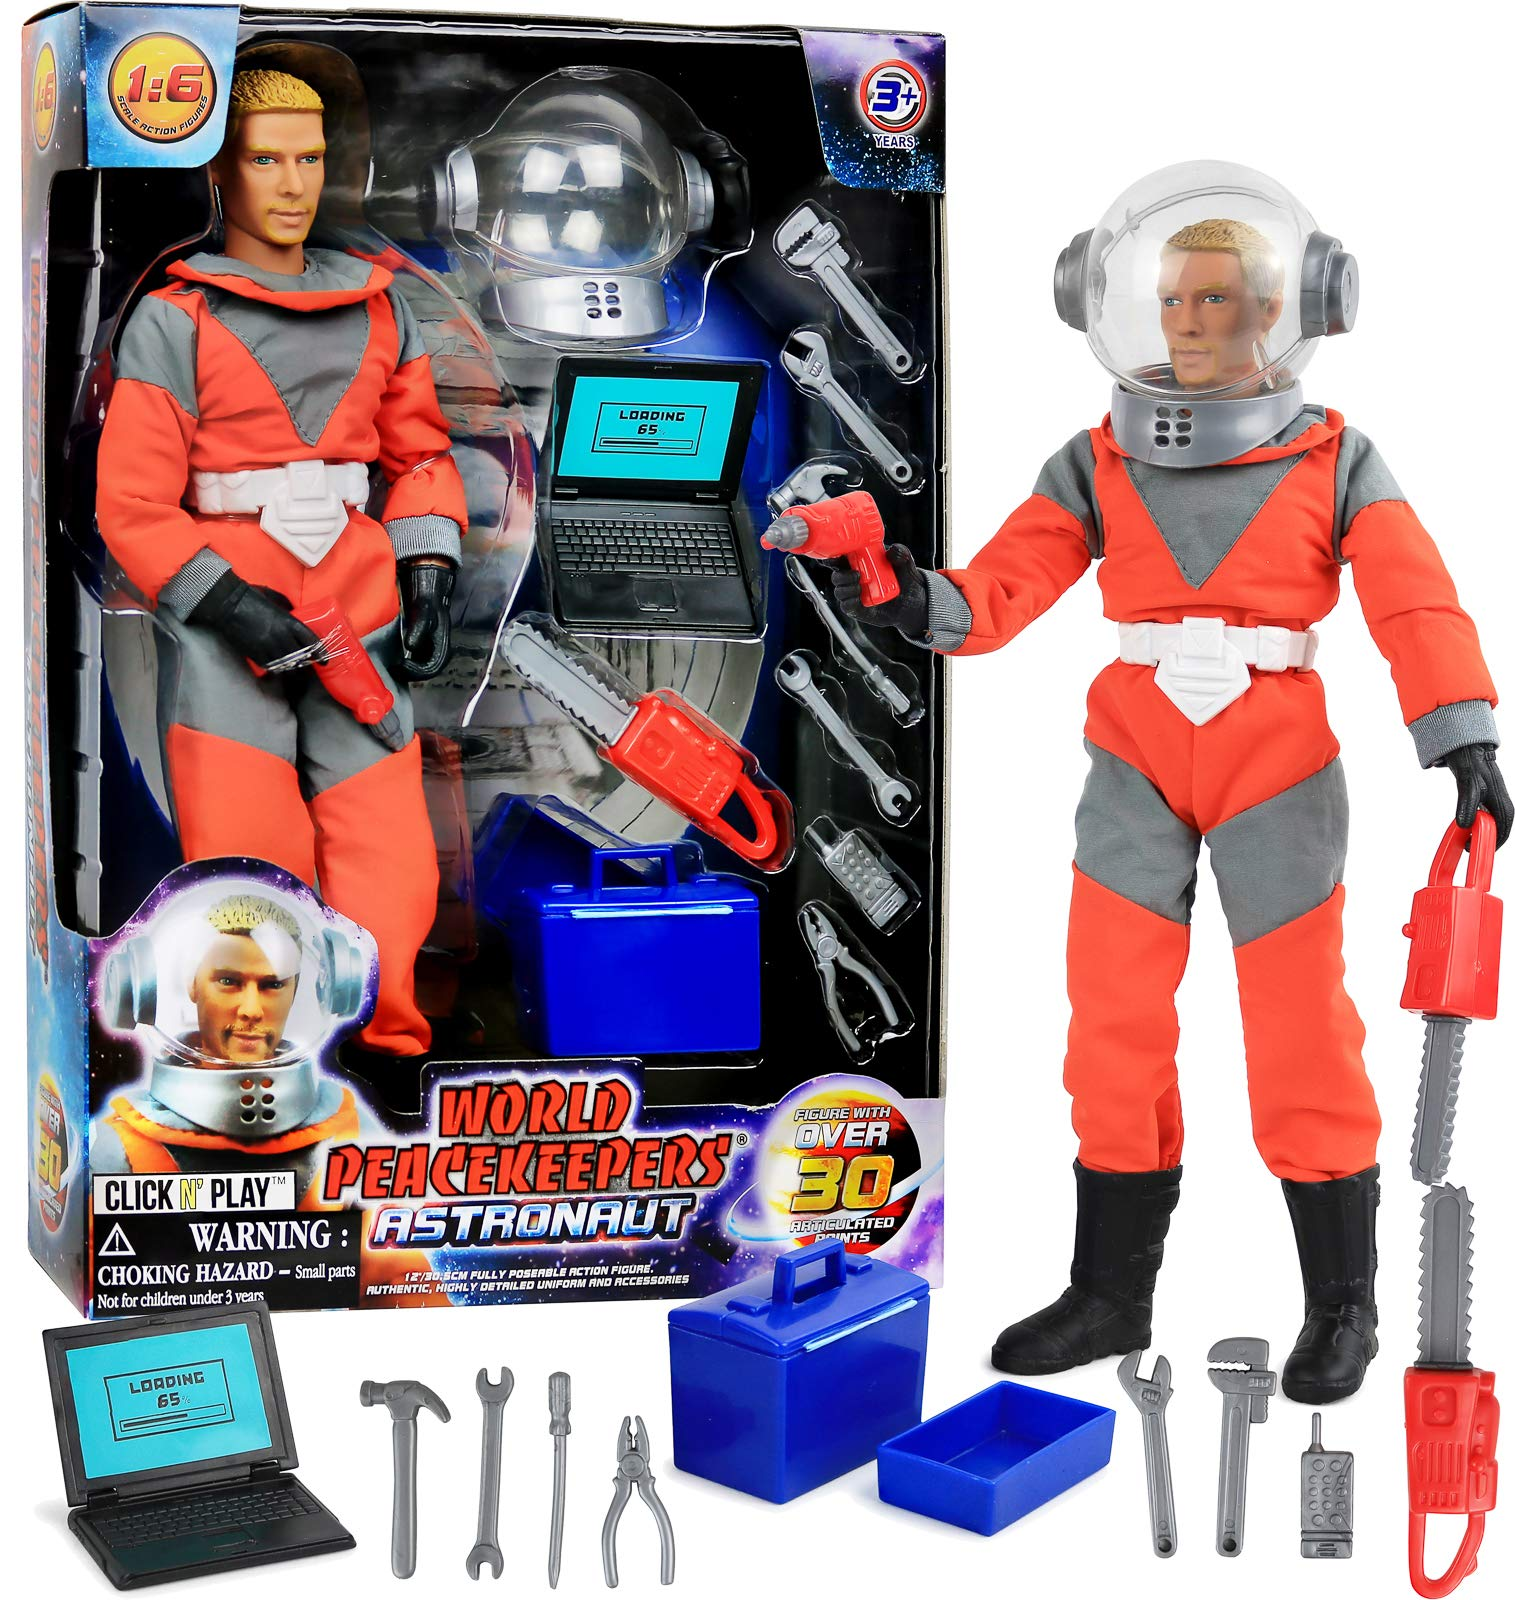 Click N' Play 12'' Astronaut Action Figure Space Exploration Playset with Accessories.